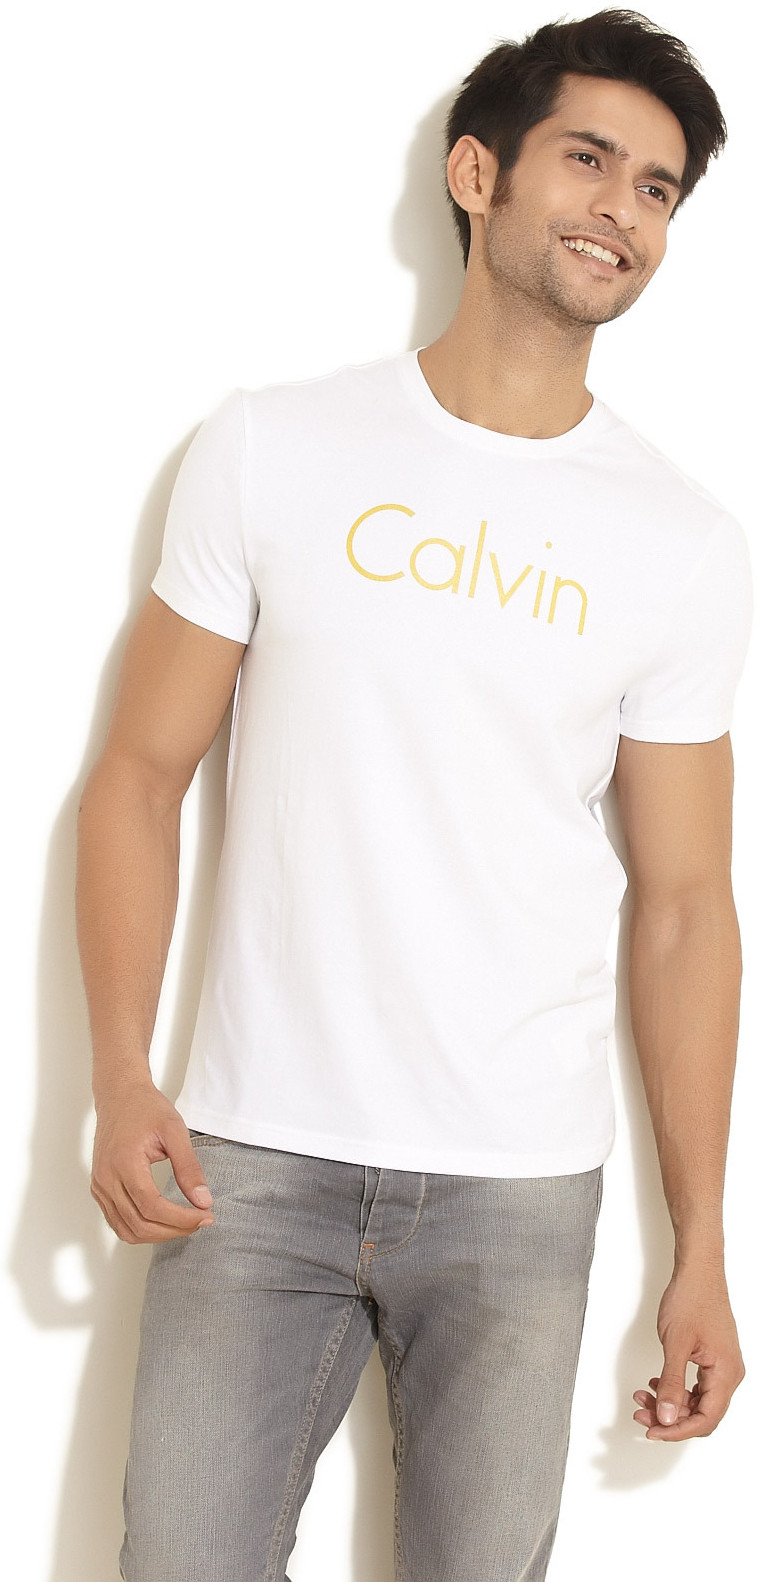 c08ce485d02 Buy Calvin Klein Jeans Printed Men s Round Neck T-Shirt   ₹ 1399 by Calvin  Klein Jeans from Flipkart